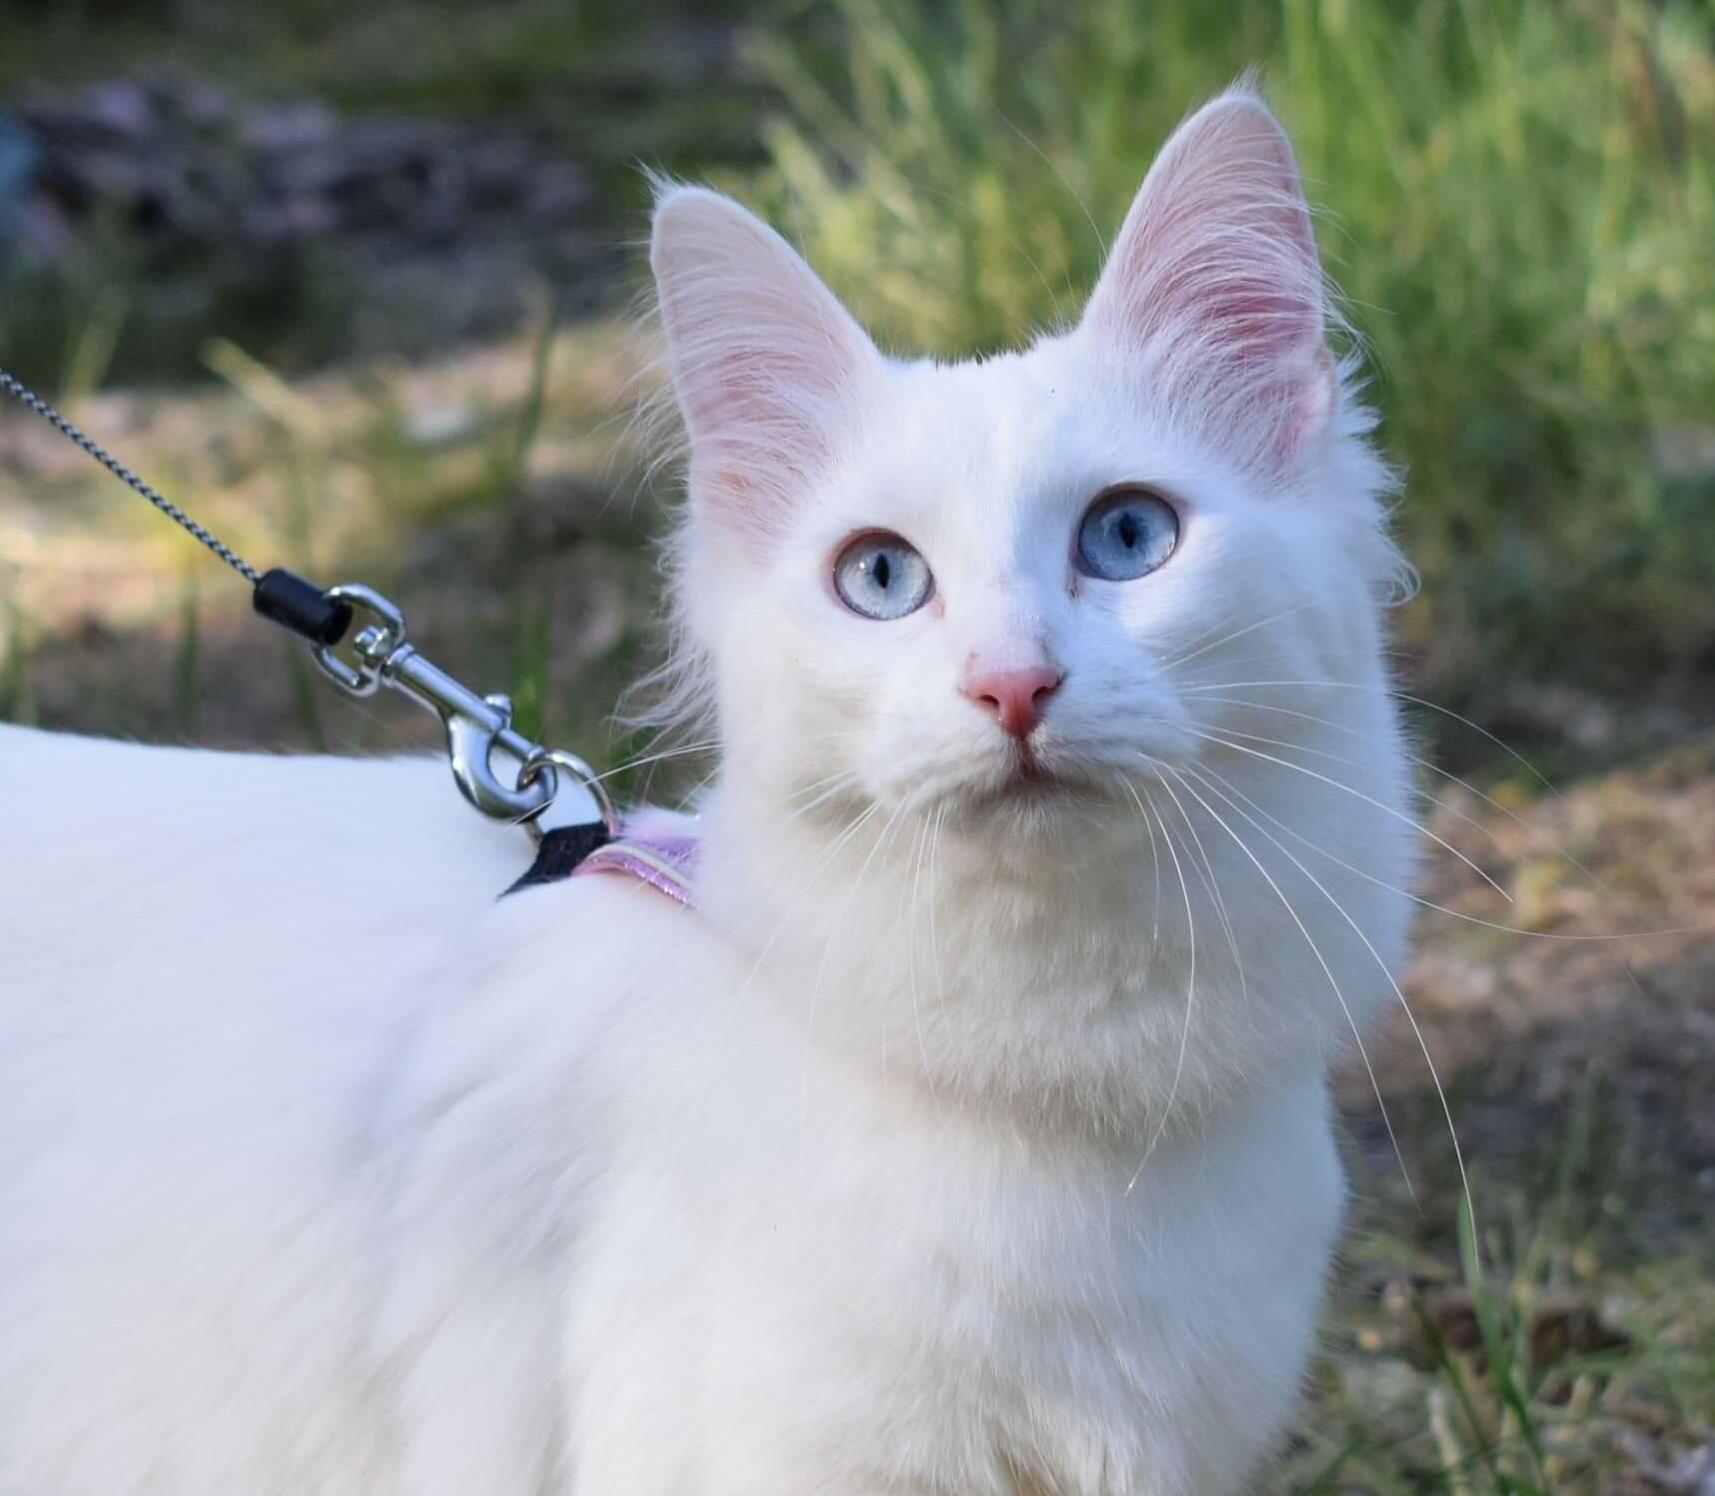 This is my one year old turkish angora safiya. she is absolutely gorgeous! 